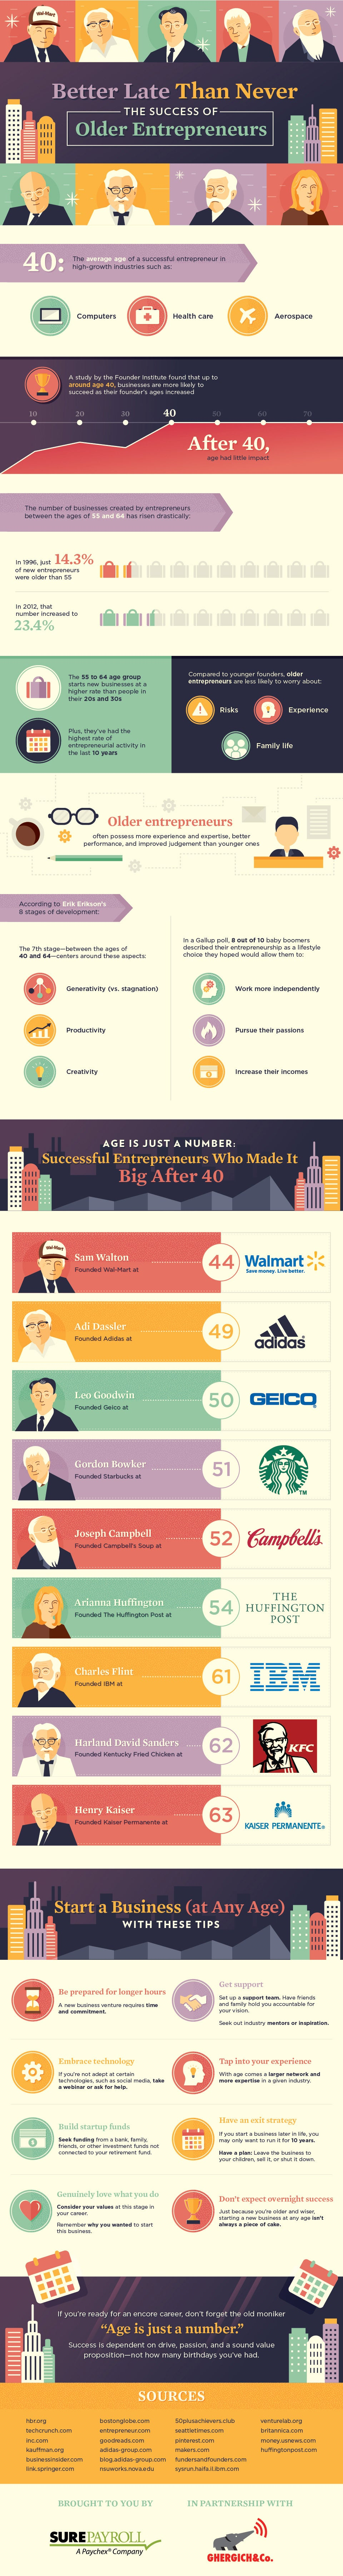 Why It's Never Too Late to Become an Entrepreneur (Infographic)